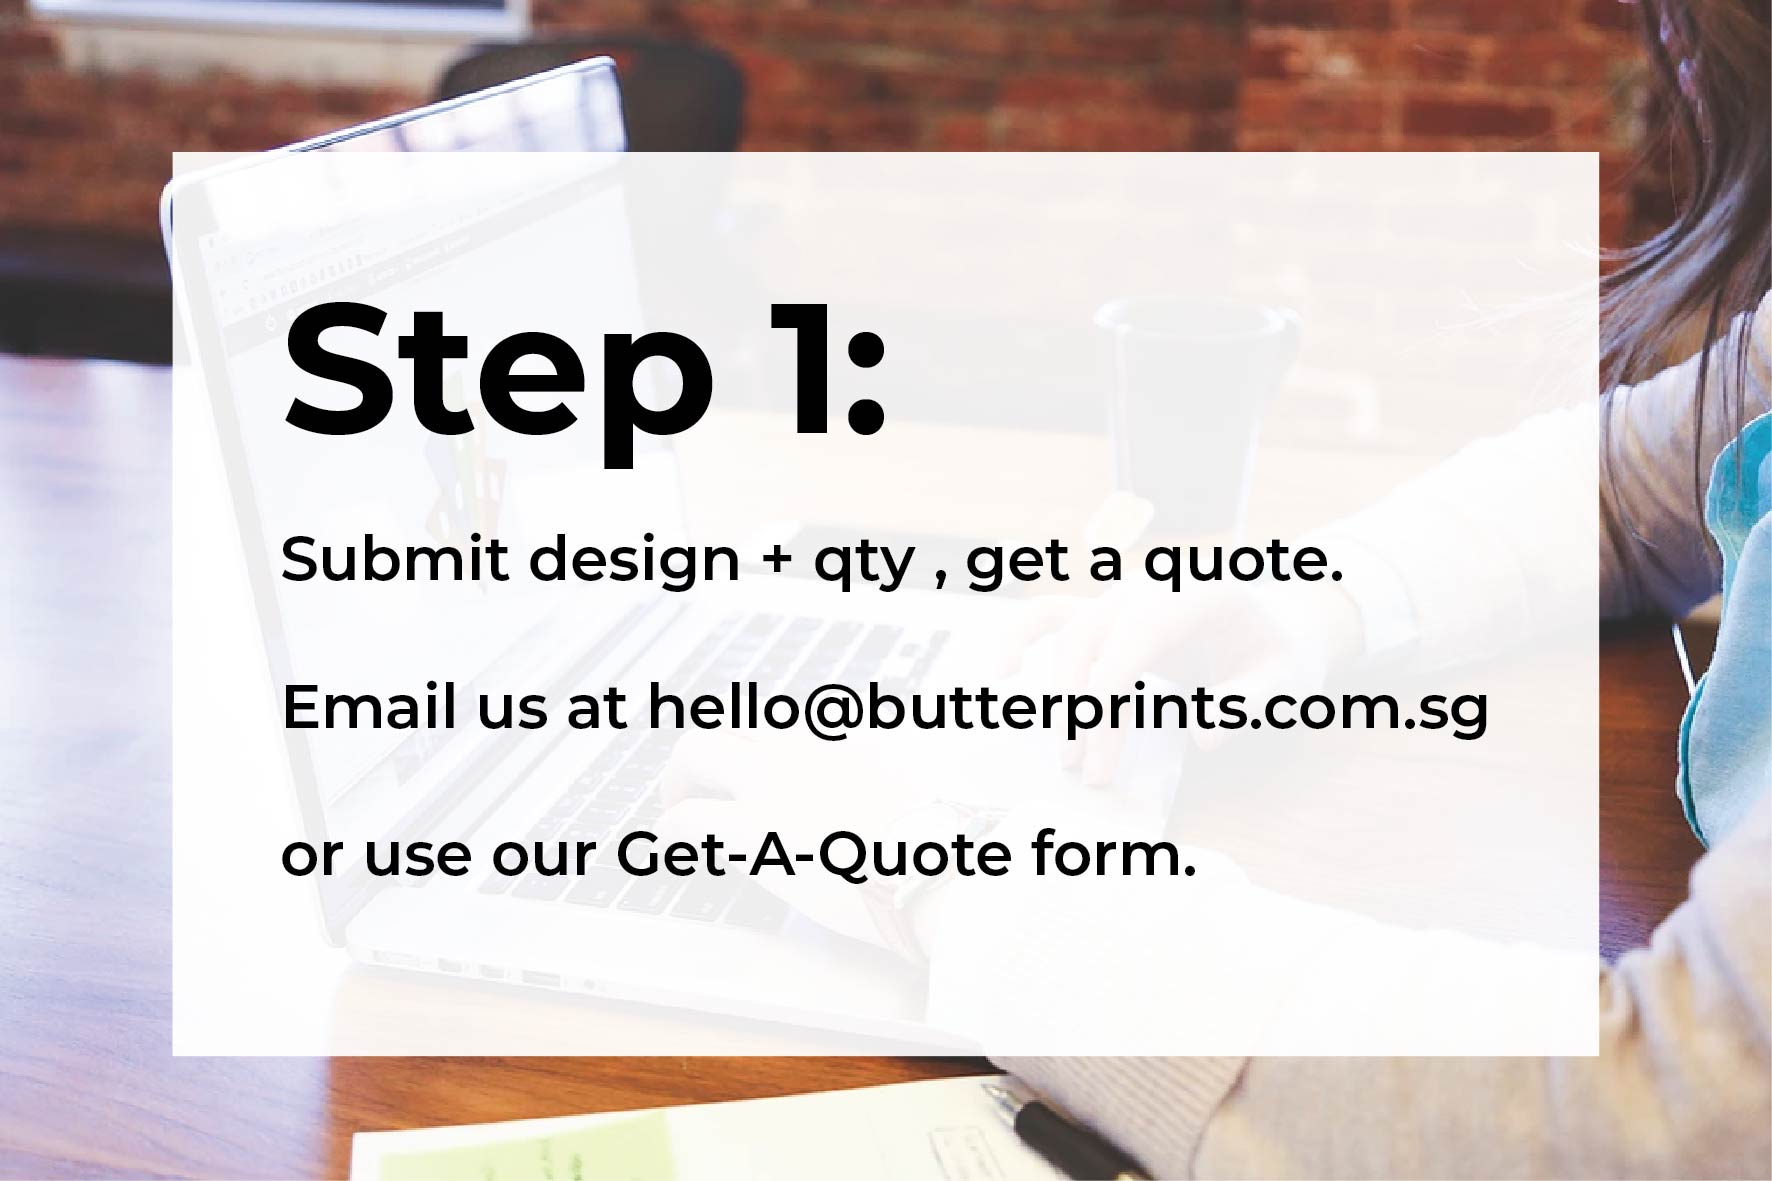 Step 1: Submit a design and get a quote.